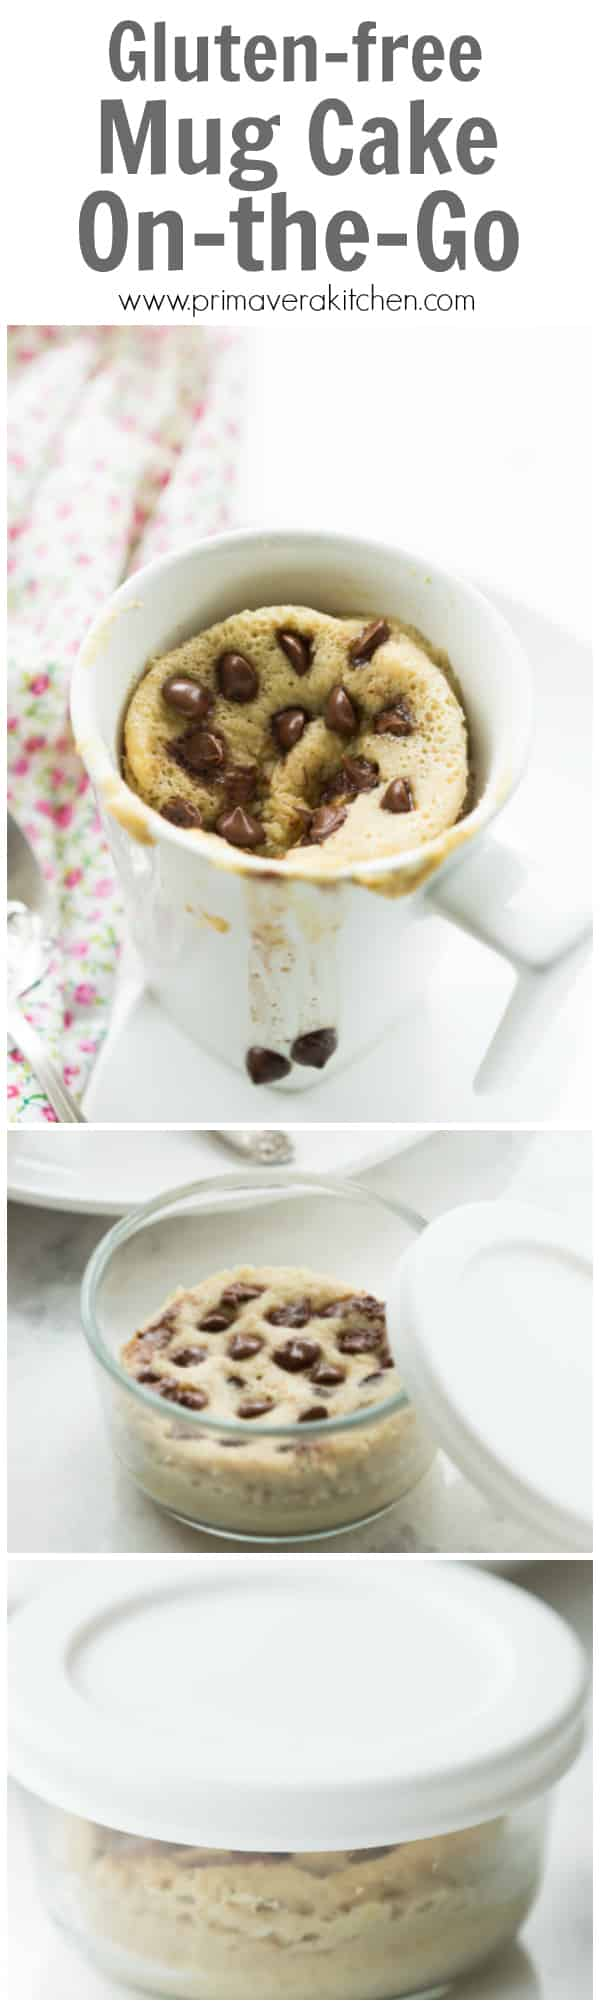 Gluten-free Mug Cake On-the-Go - I called this recipe ''Gluten-free Mug Cake On-the-Go'' because you can make it in your mason jar or even in a small microwave-safe container that has a lid and bring easily to work or school. This is very convenient, healthy and delicious snack to have during your busy week!